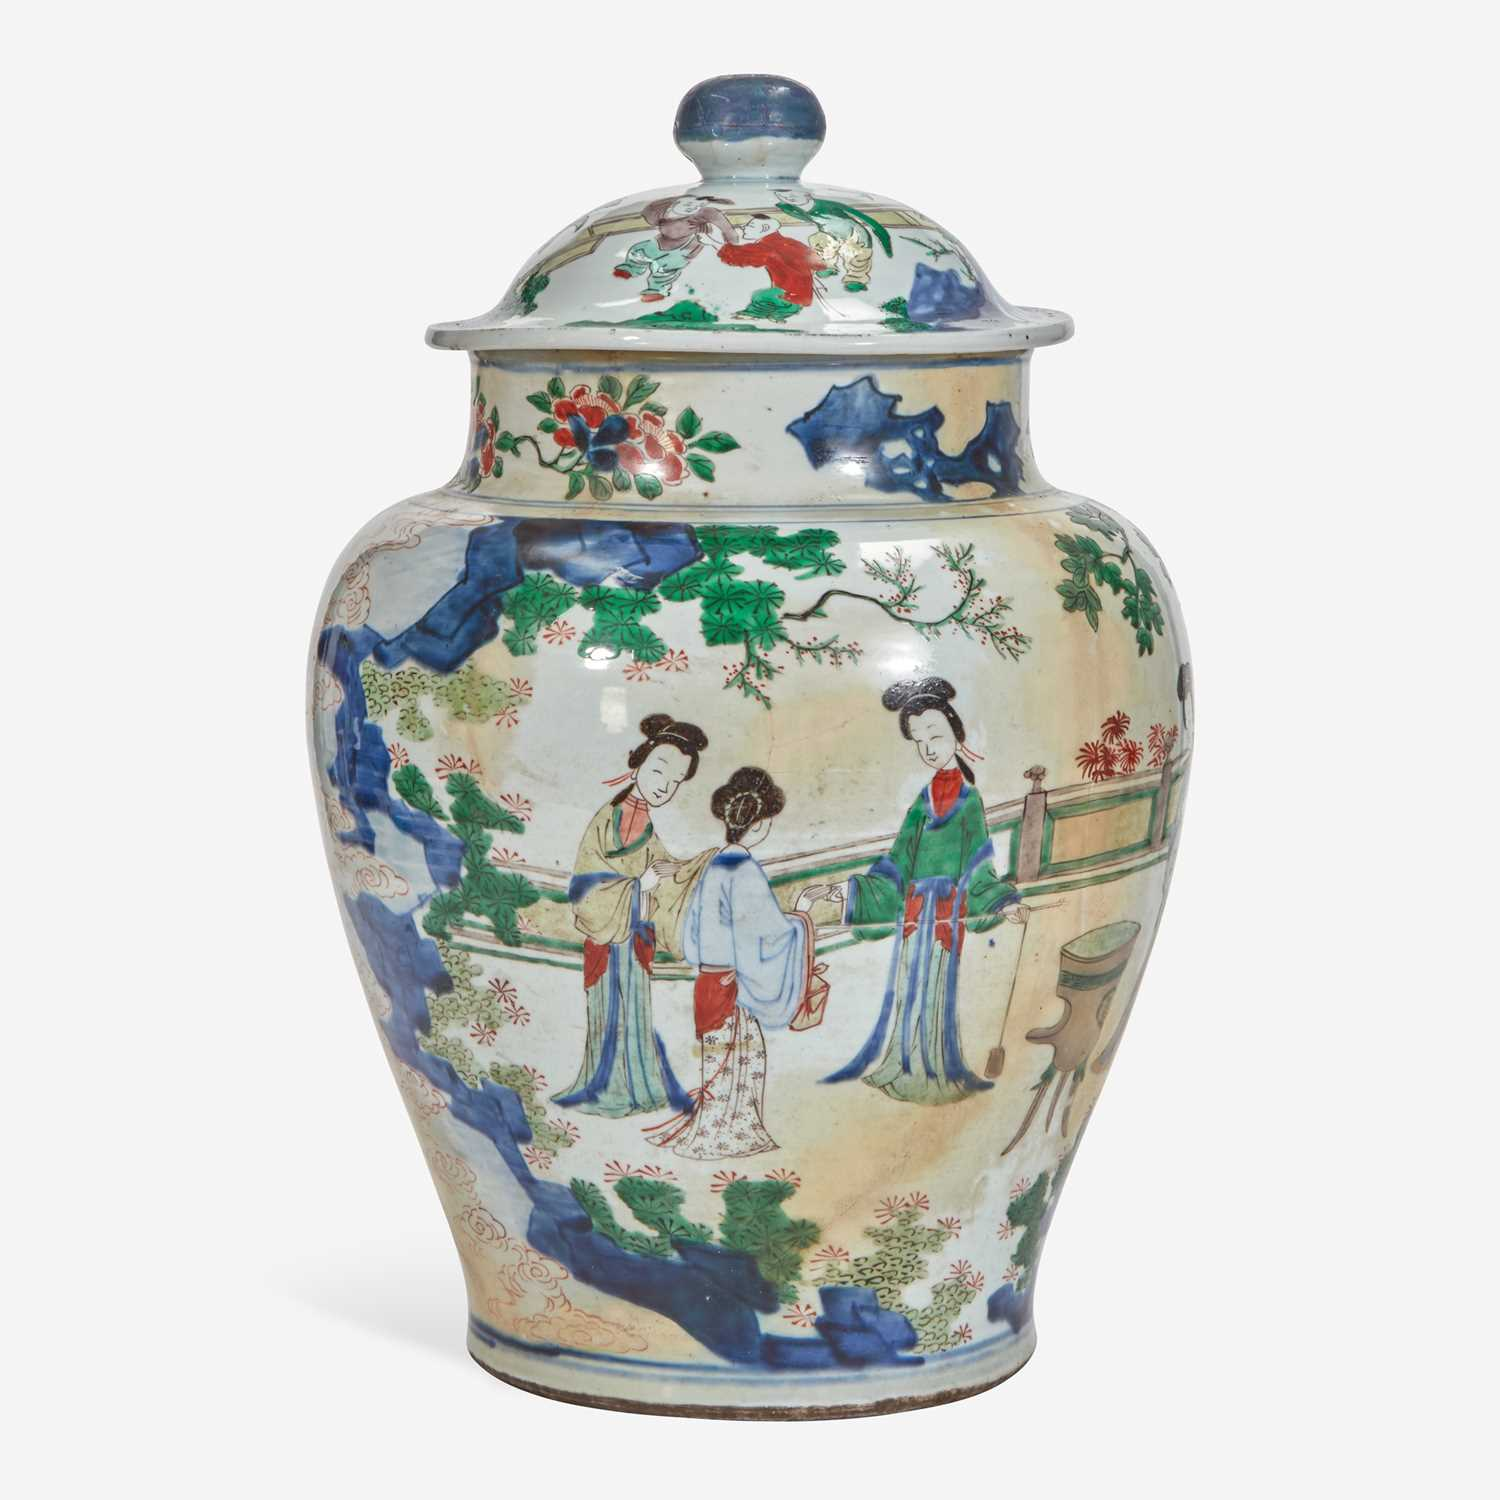 Lot 87 - A Chinese wucai-decorated porcelain large jar and cover 五彩带盖大罐